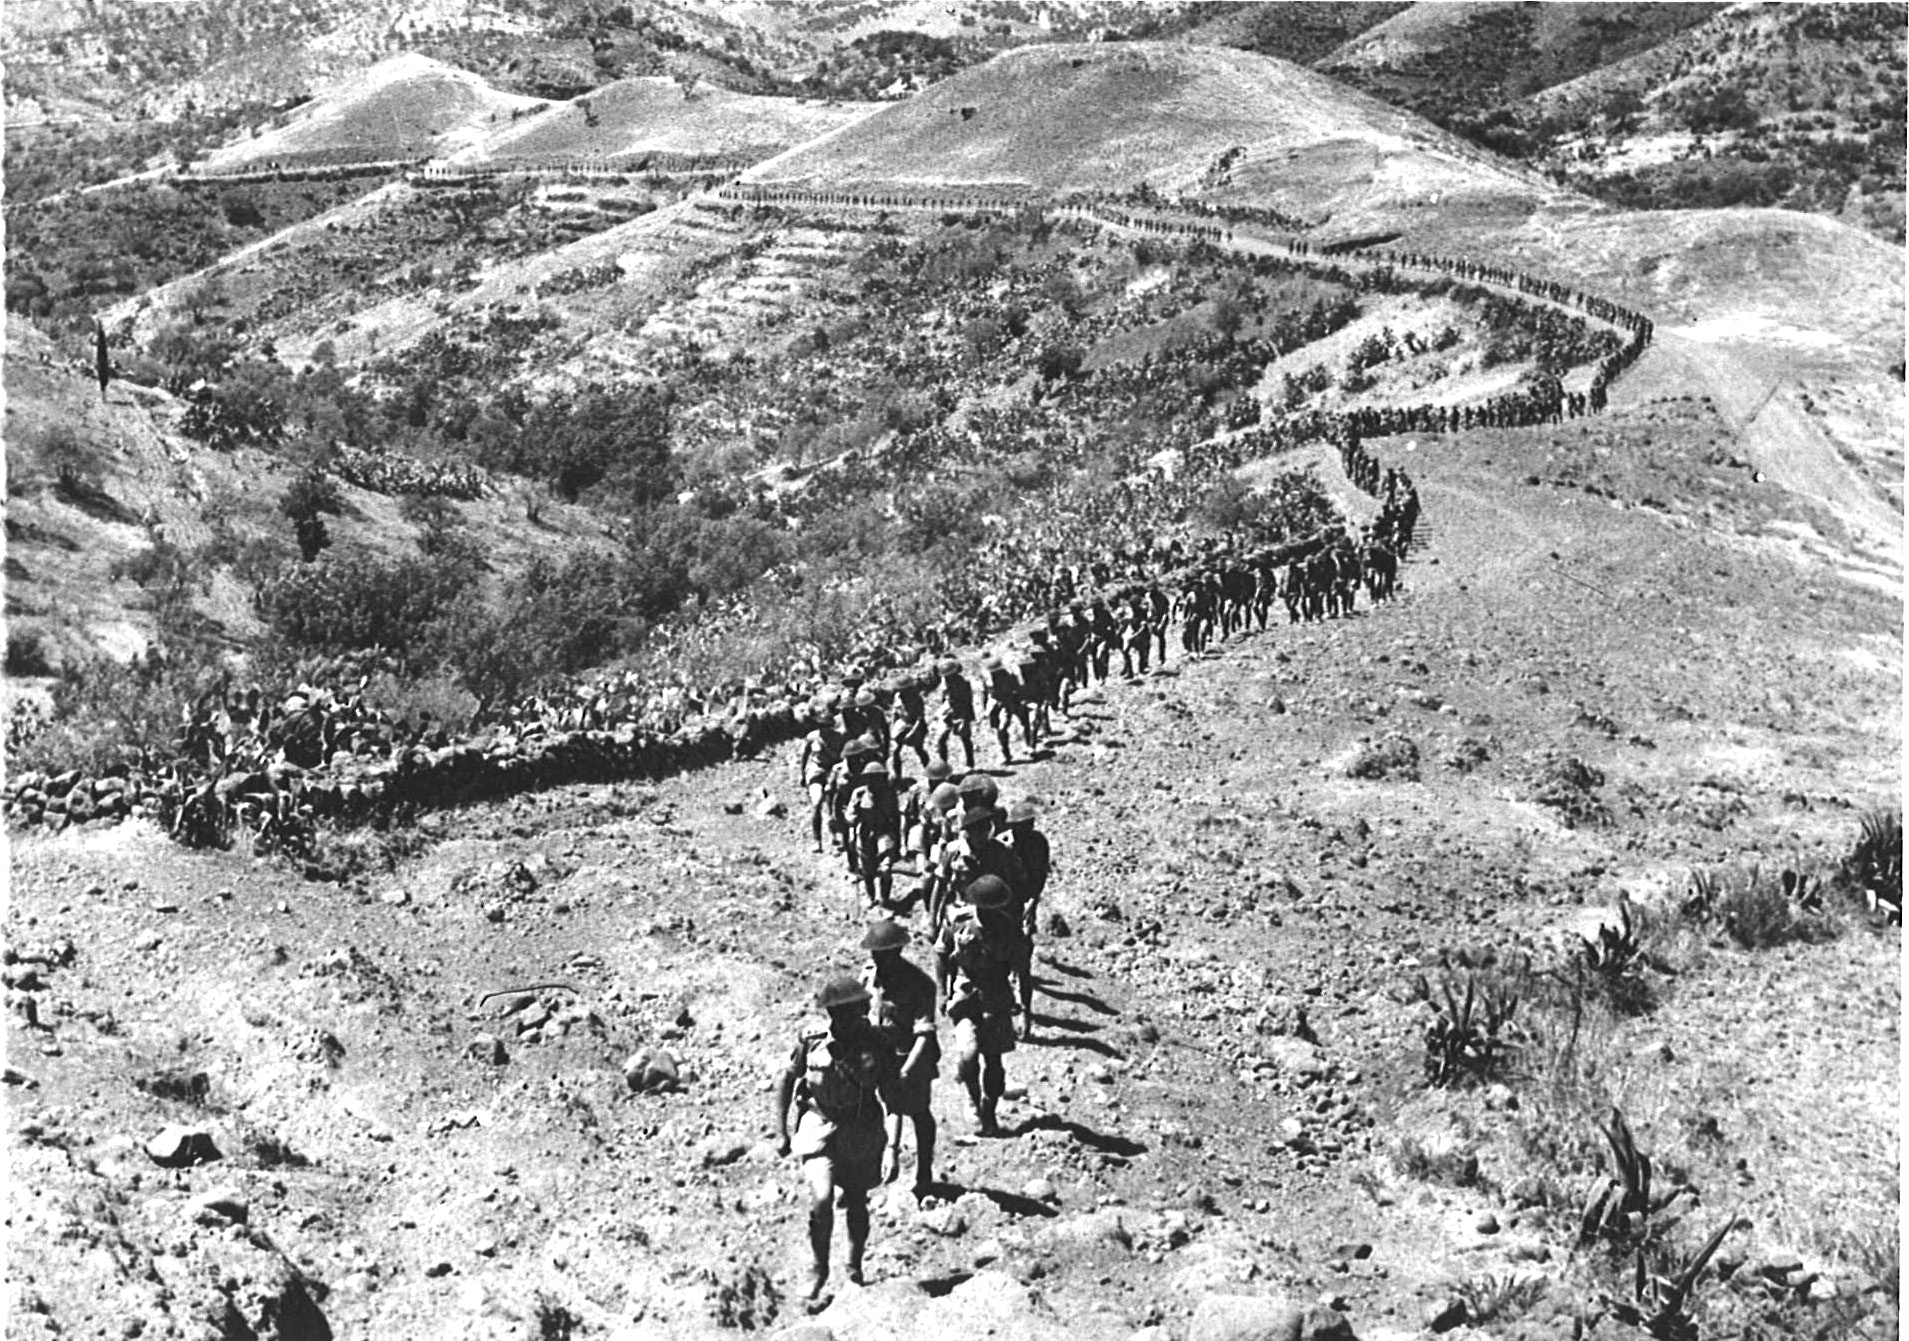 Sicily 1943: the island has been captured, and Lieutenant-Colonel Hoffmeister leads the regiment cross-country to a Brigade Inspection by General Sir Bernard Montgomery